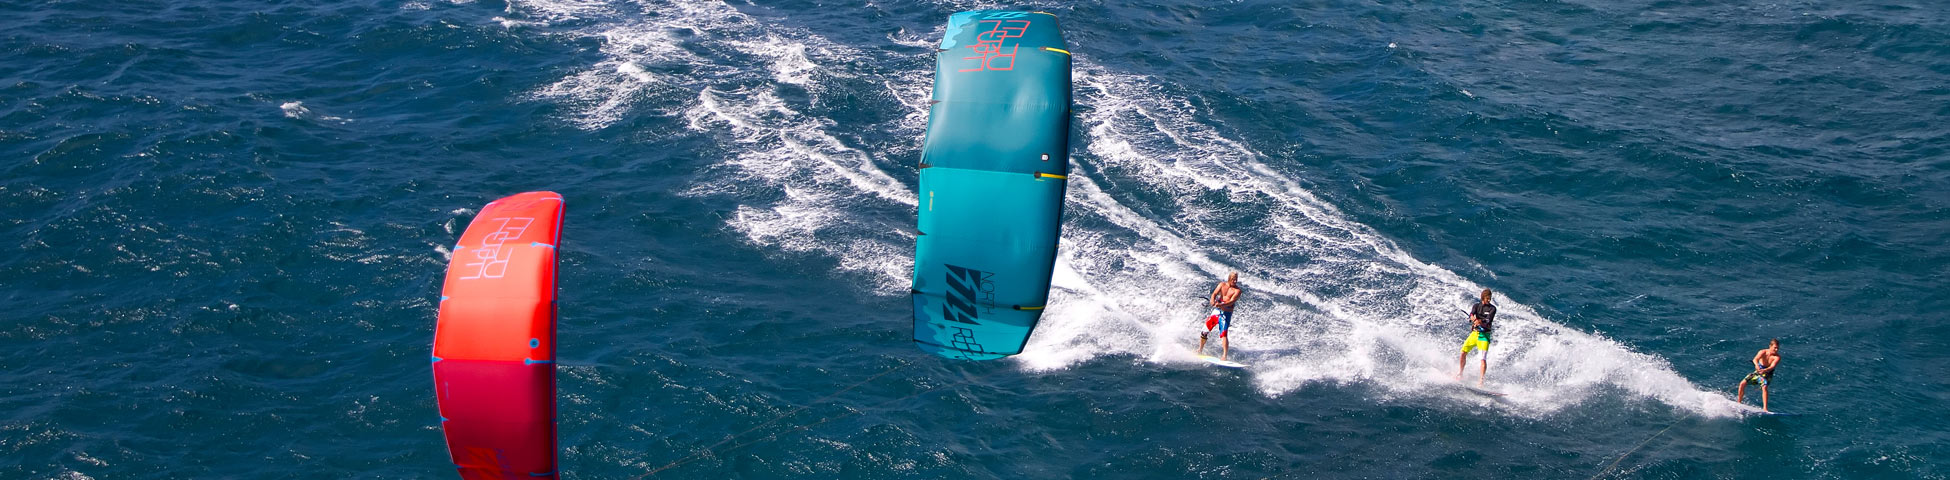 Discover Rodrigues Island and its Kite surf Festival 2017